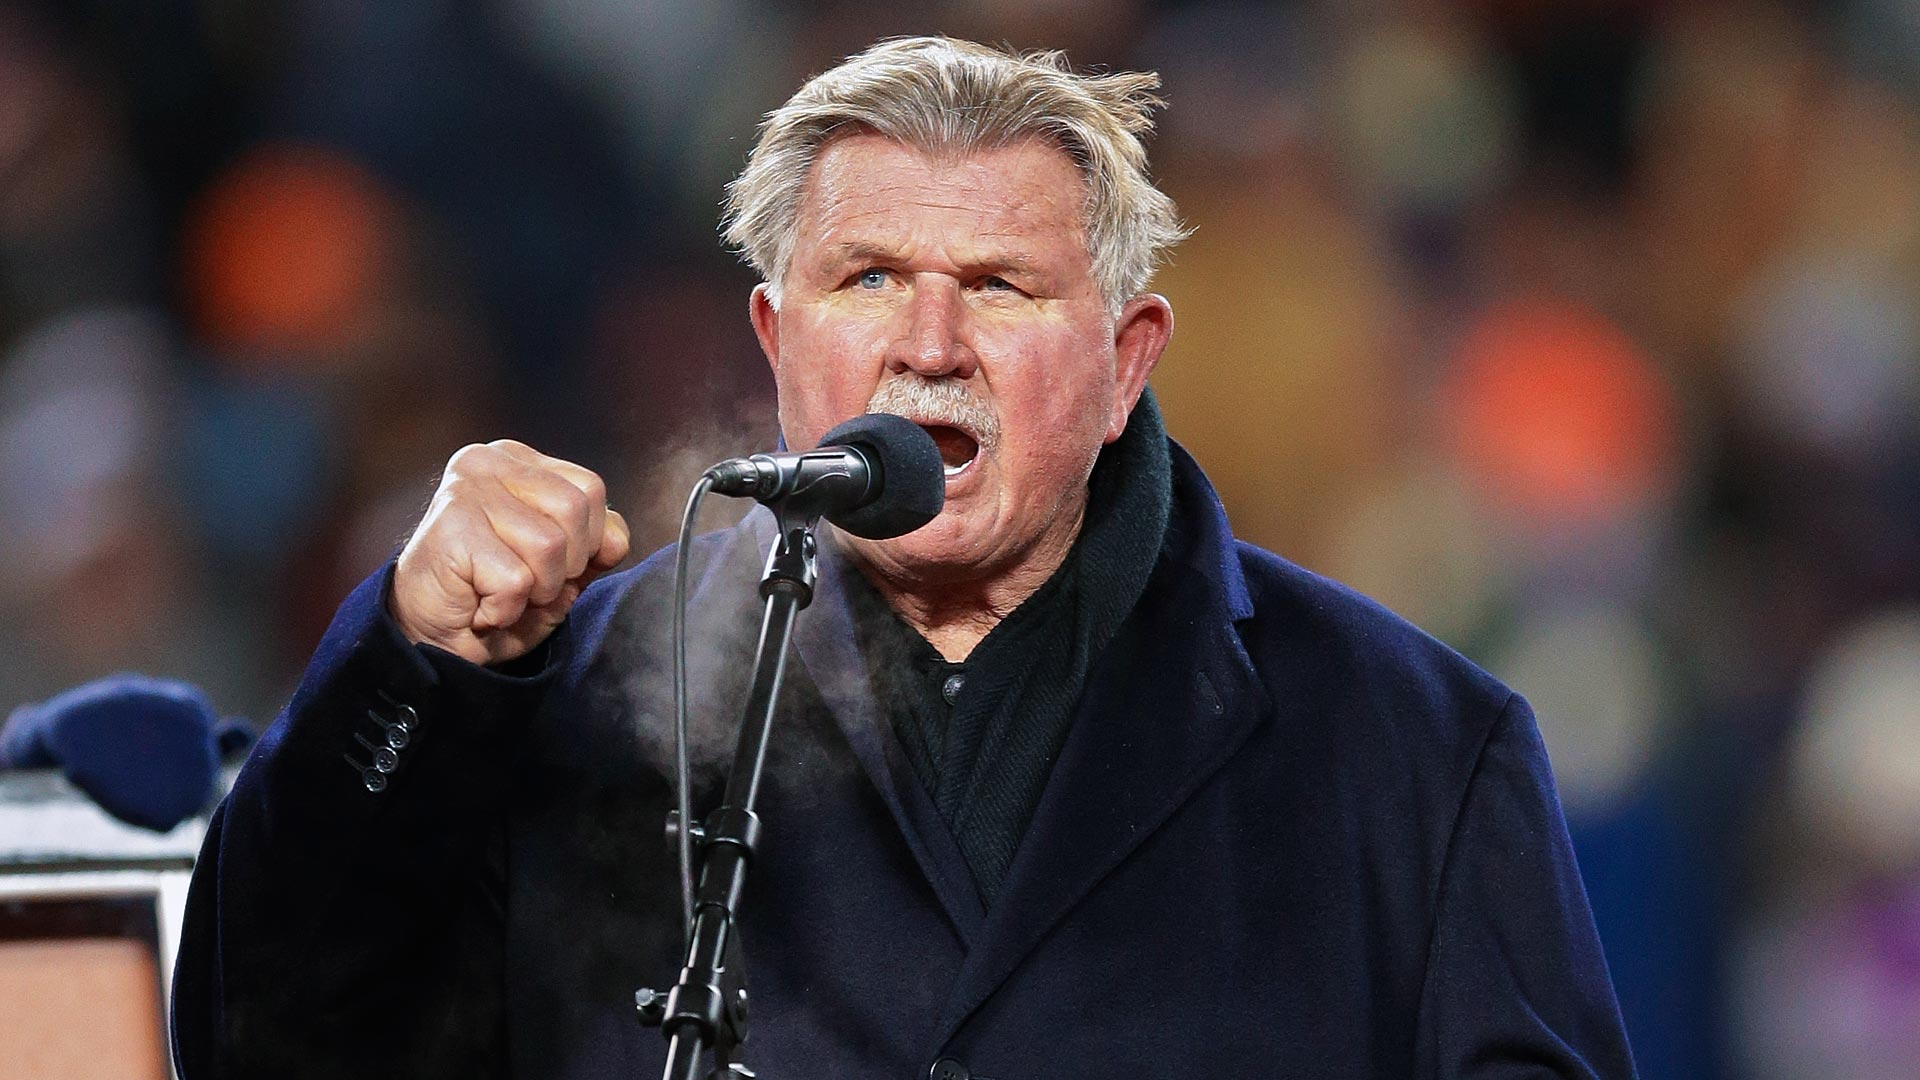 mike ditka packersmike ditka restaurant, mike ditka, mike ditka quotes, mike ditka espn, mike ditka wiki, mike ditka restaurant chicago, mike ditka twitter, mike ditka net worth, mike ditka packers, mike ditka stats, mike ditka's chicago, mike ditka fired, mike ditka wife, mike ditka farts on tv, mike ditka obama, mike ditka coaching record, mike ditka sweater vest, mike ditka resort, mike ditka cigars, mike ditka costume